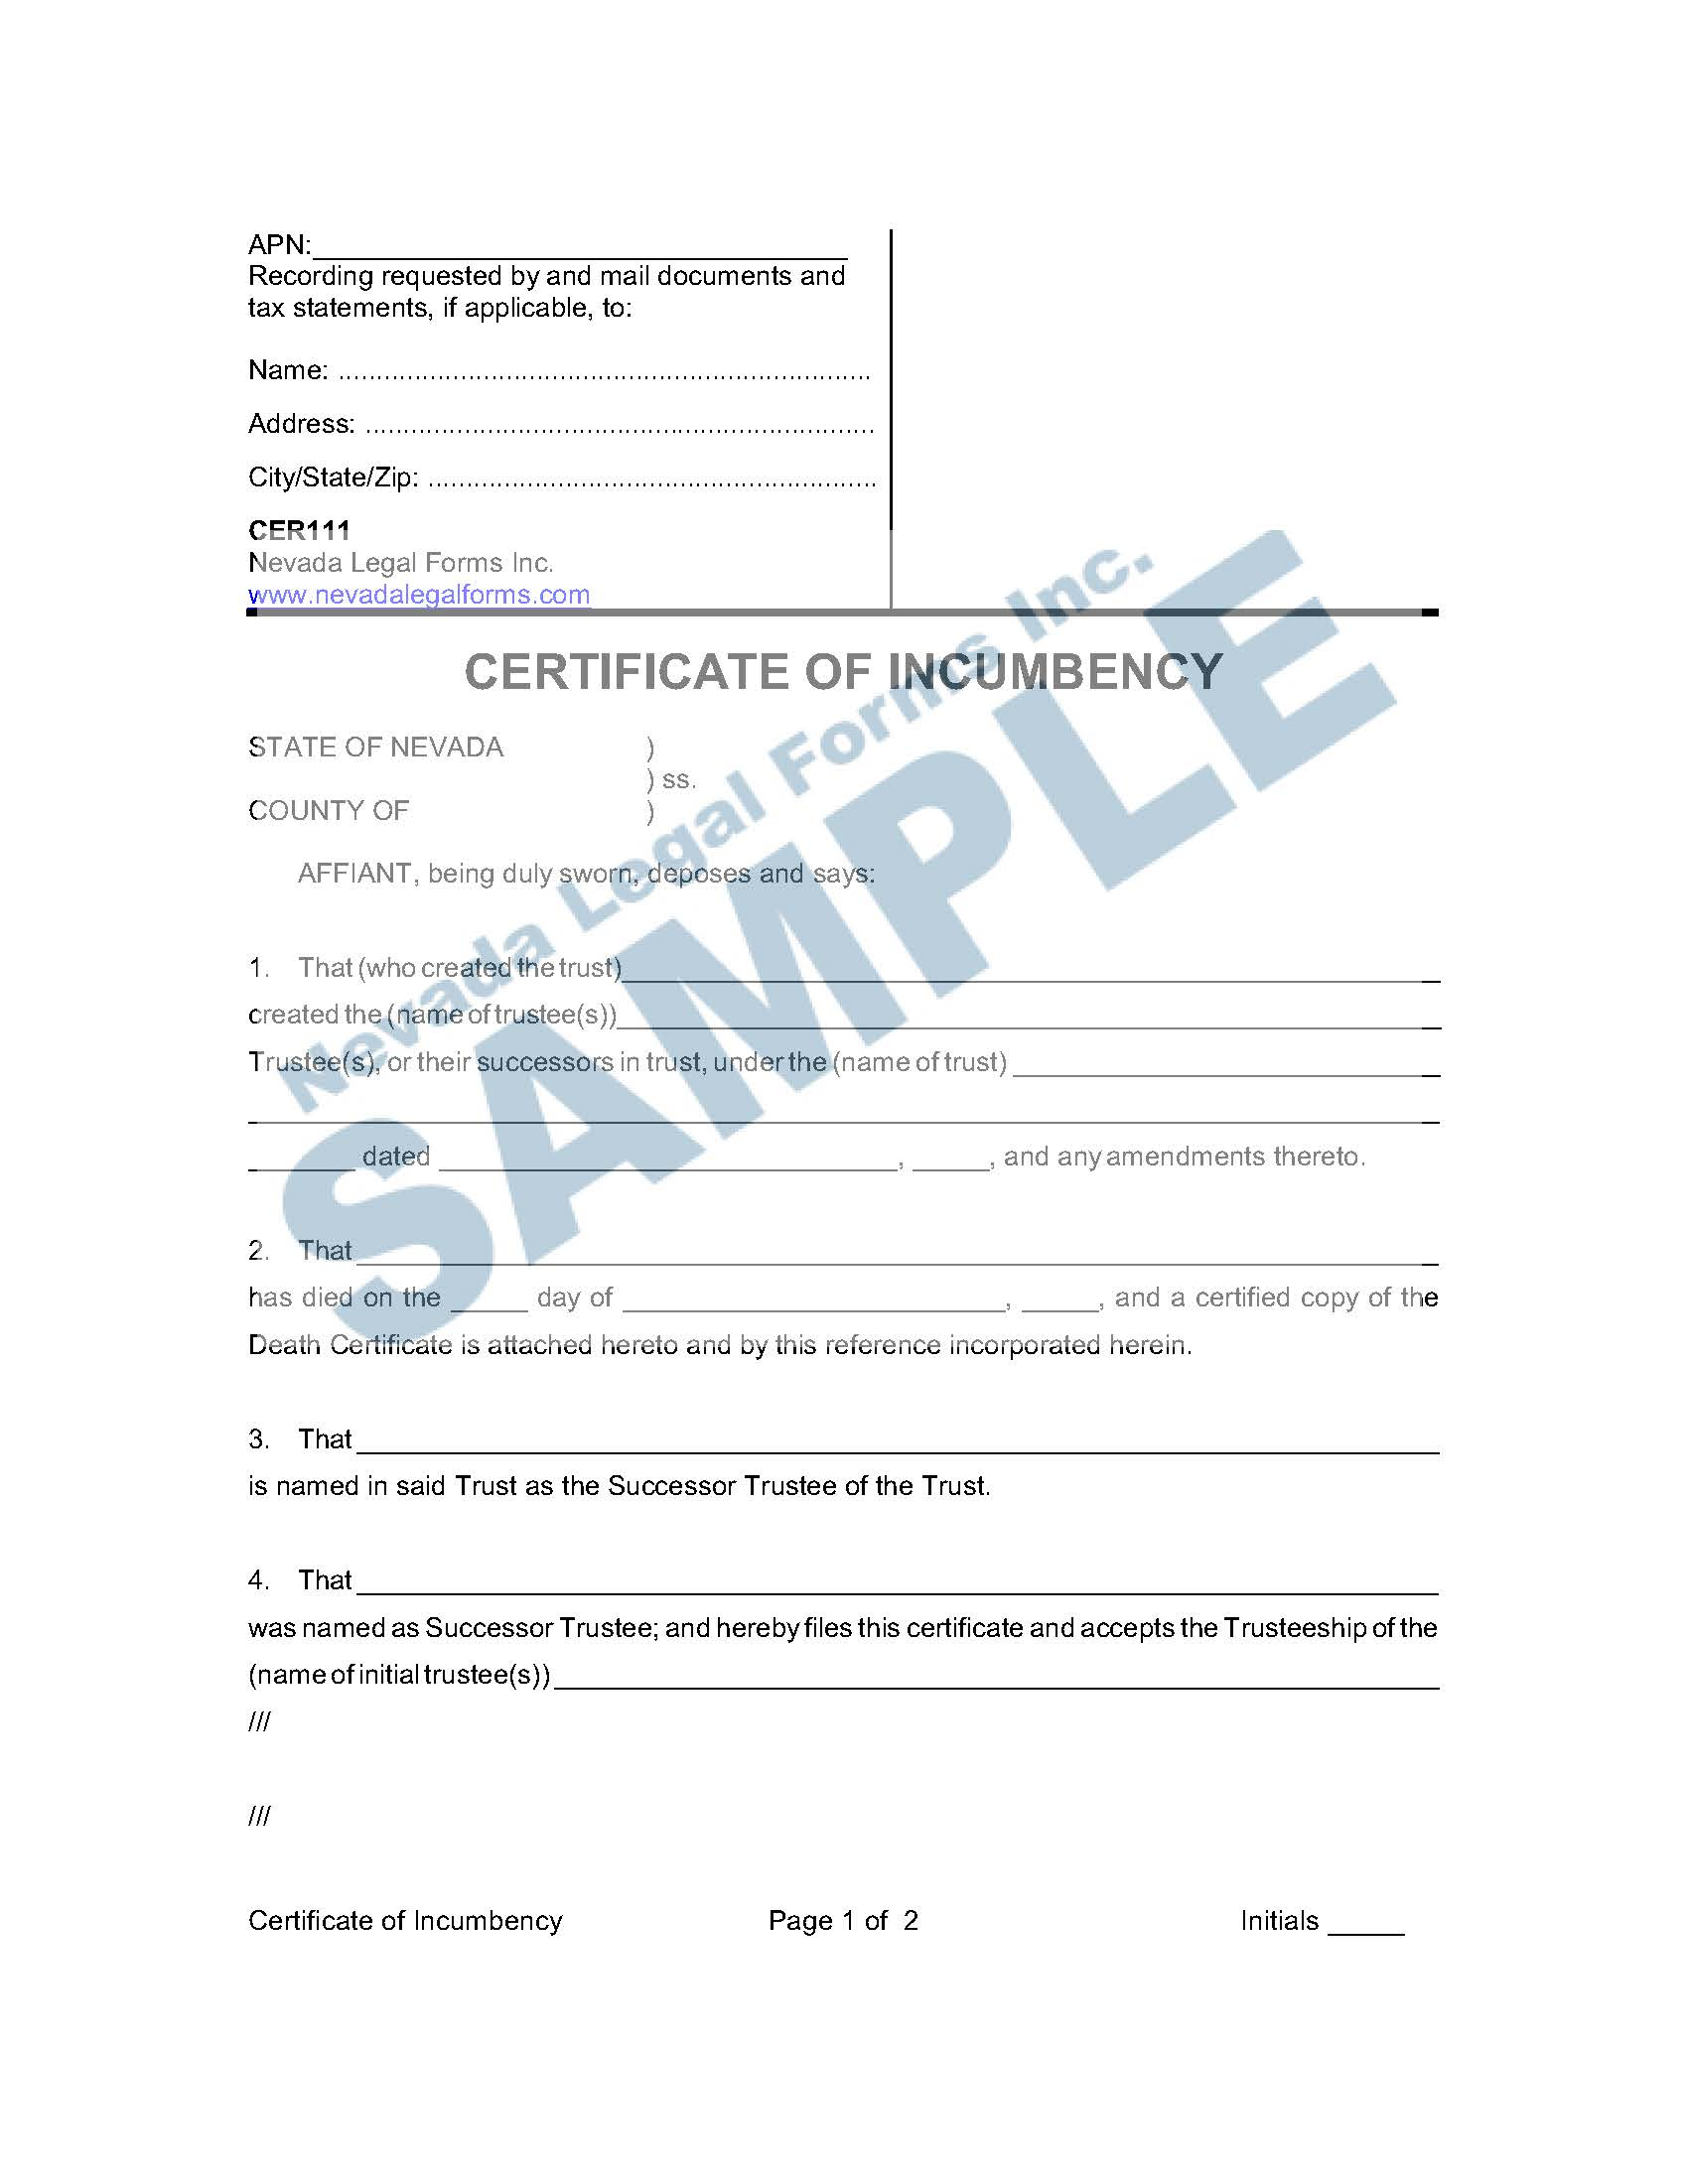 CERTIFICATE OF INCUMBENCY | Nevada Legal Forms & Services